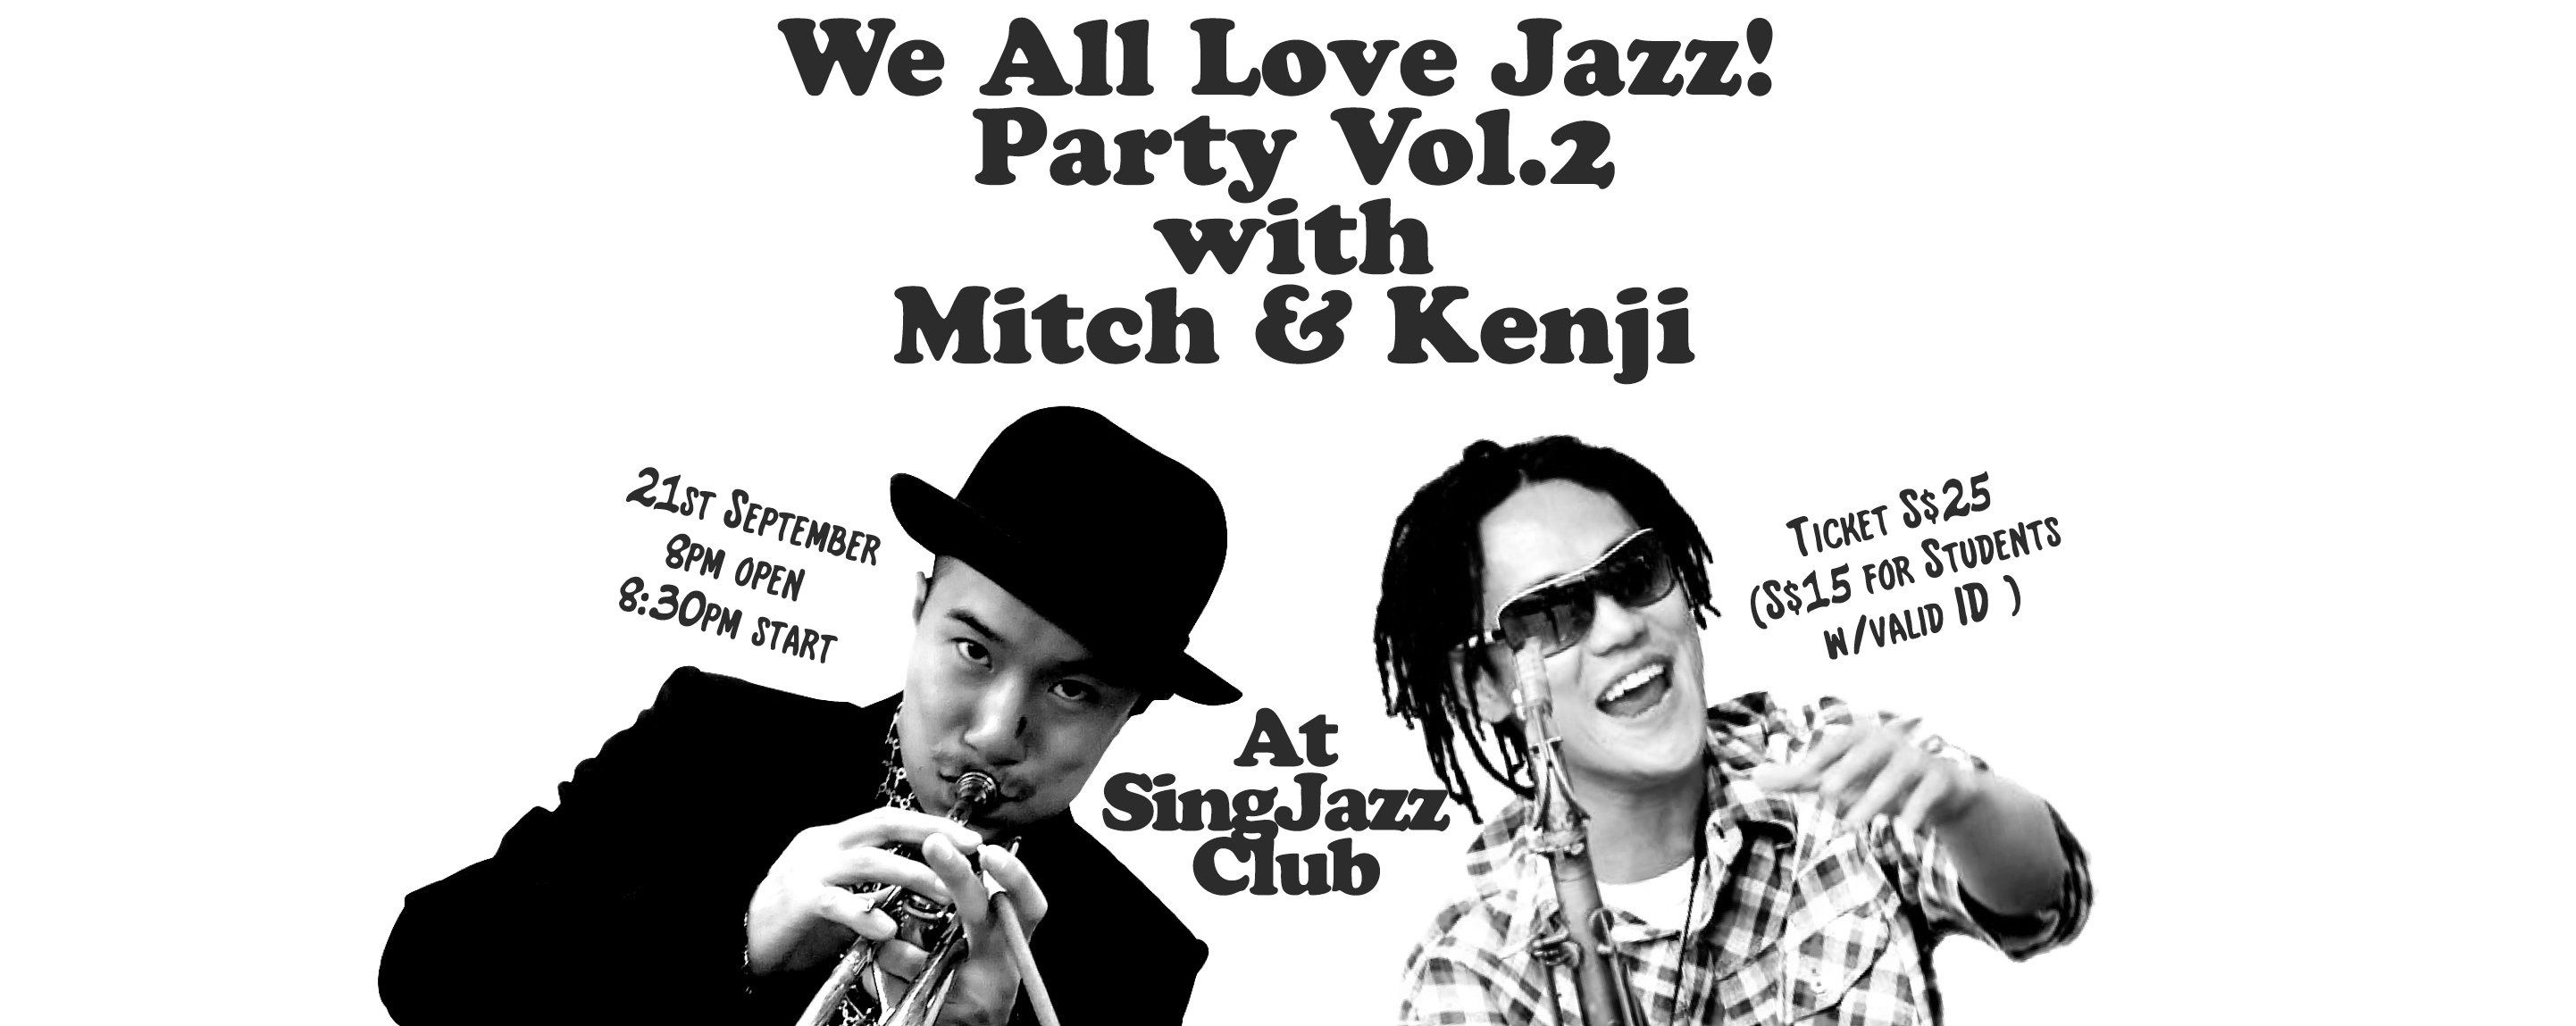 'WE ALL LOVE JAZZ!' PARTY Vol.2